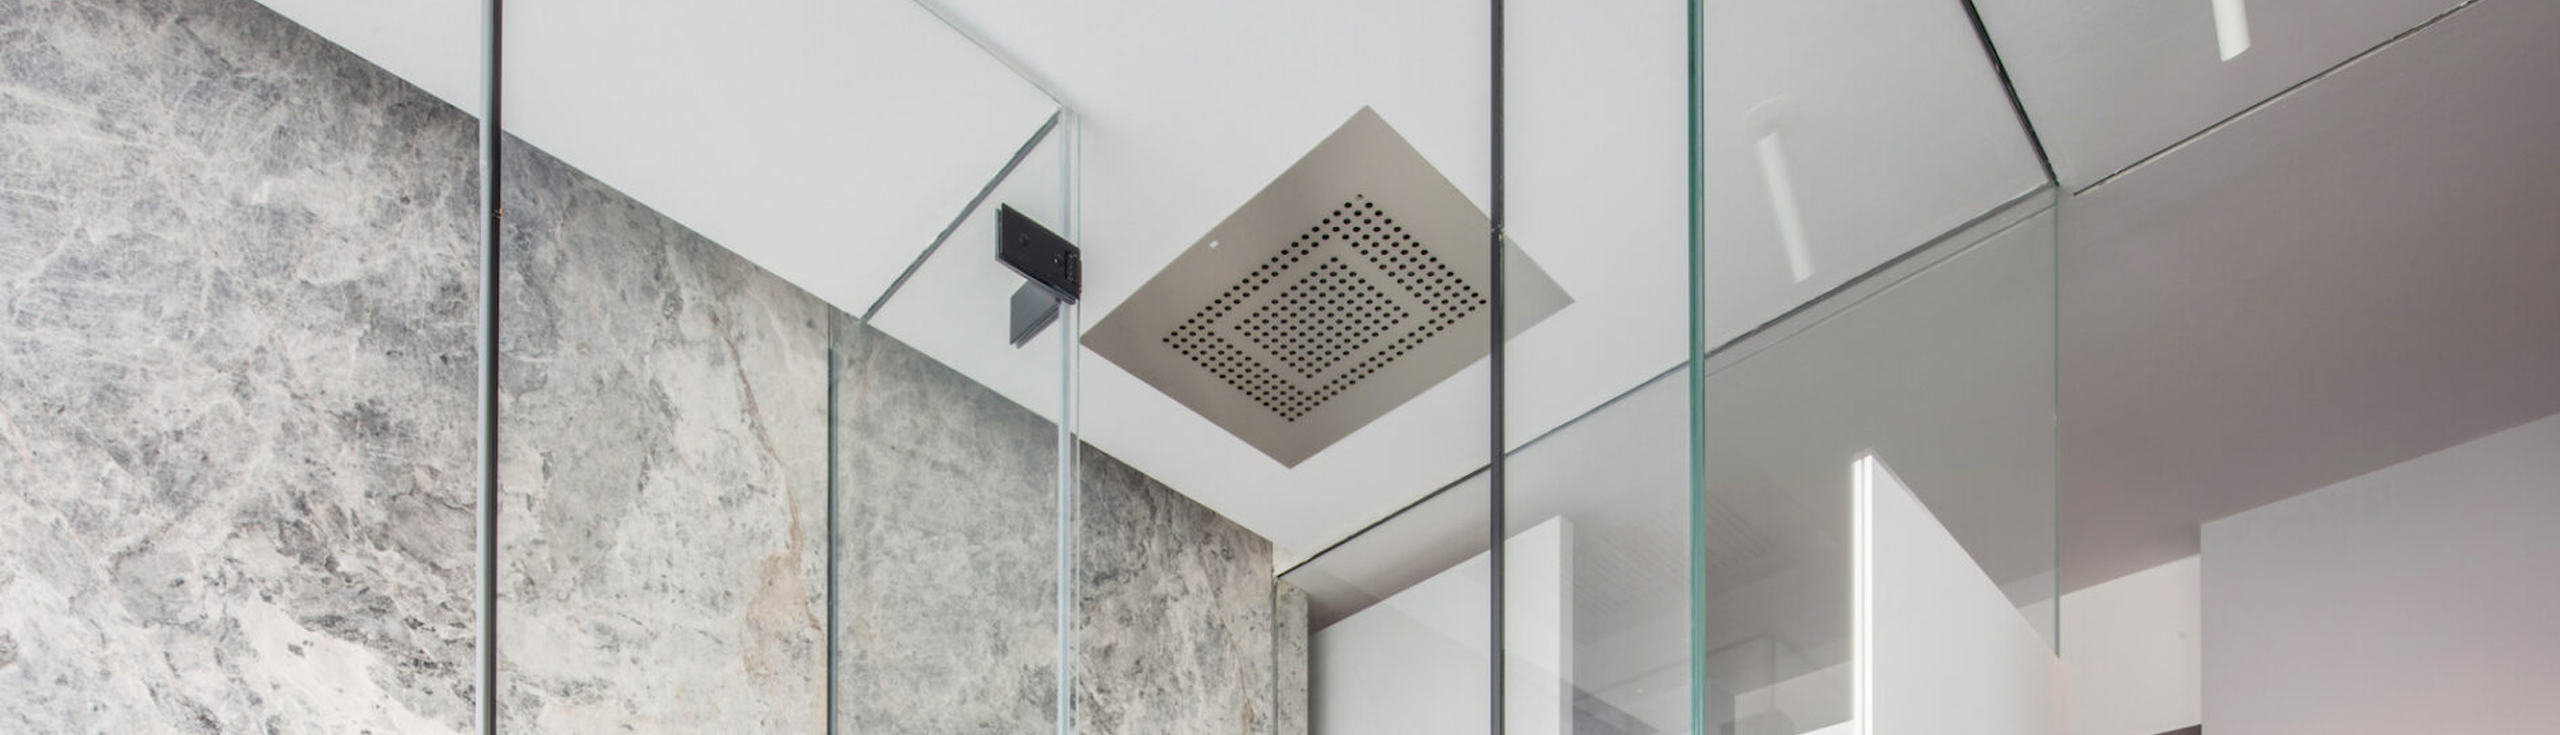 extractor fan cleaning tips for your wetroom